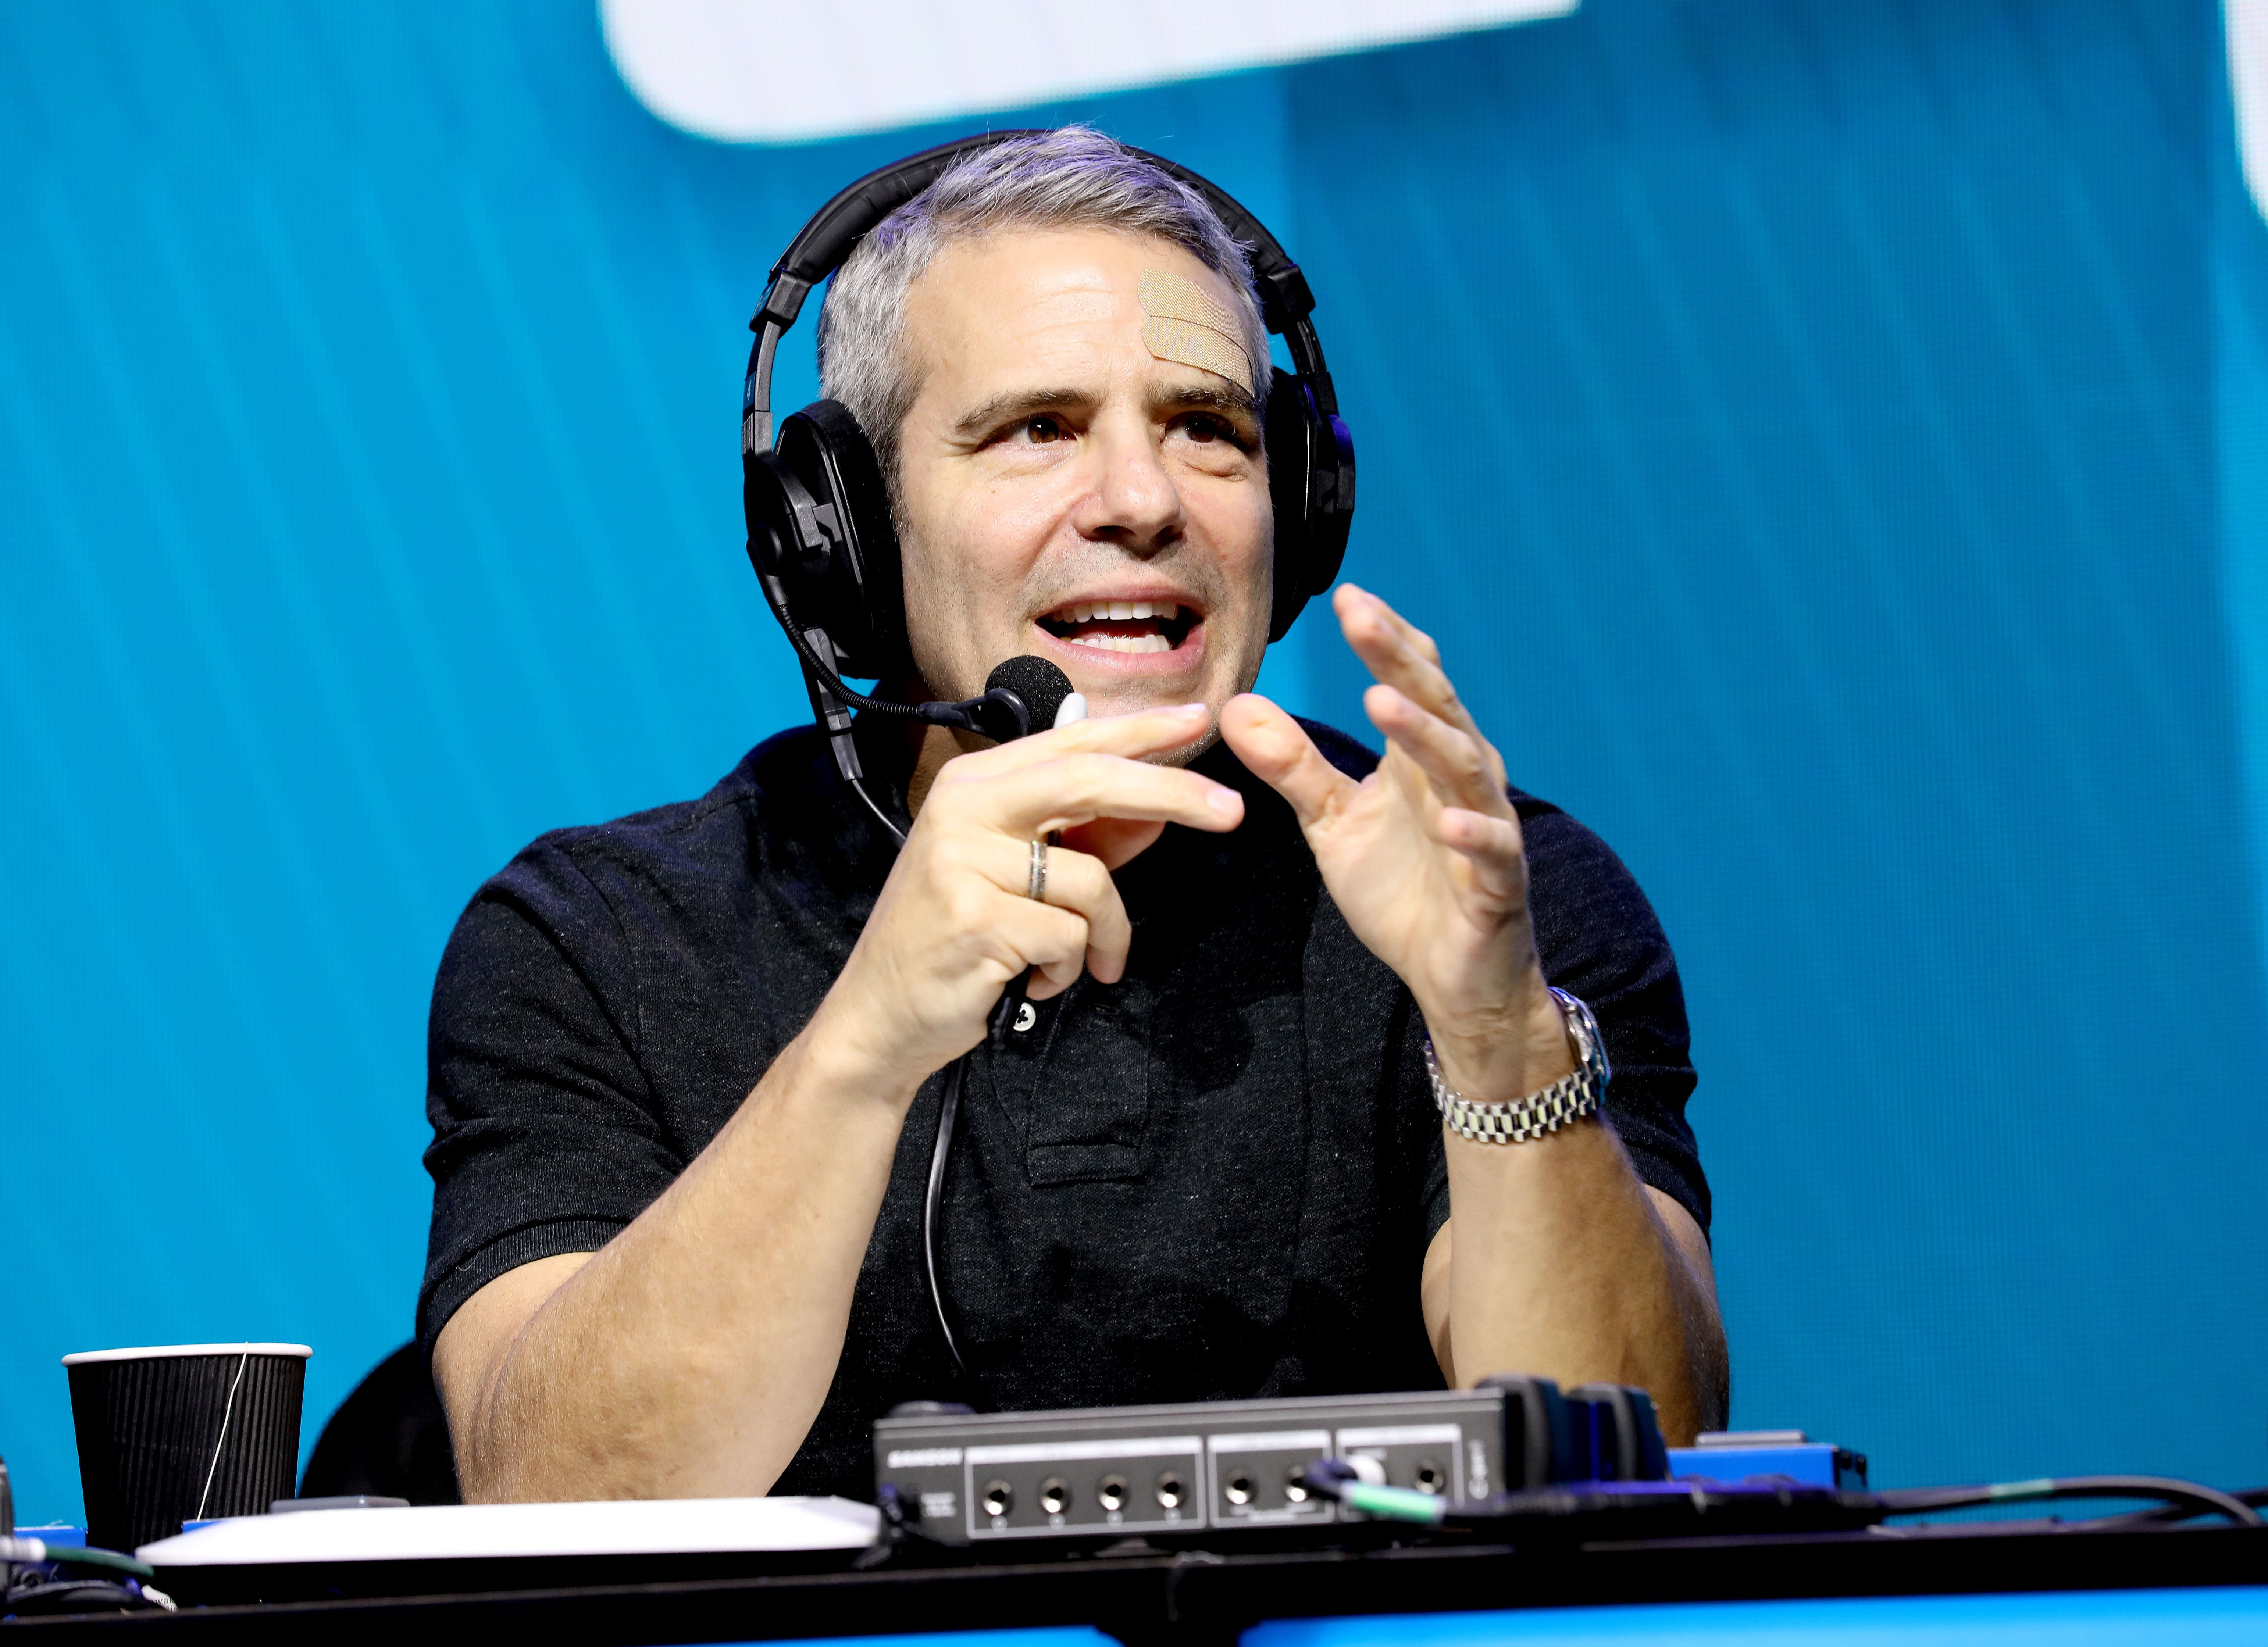 Andy Cohen during the Super Bowl LIV for SiriusXM on January 31, 2020, in Miami, Florida. | Source: Getty Images